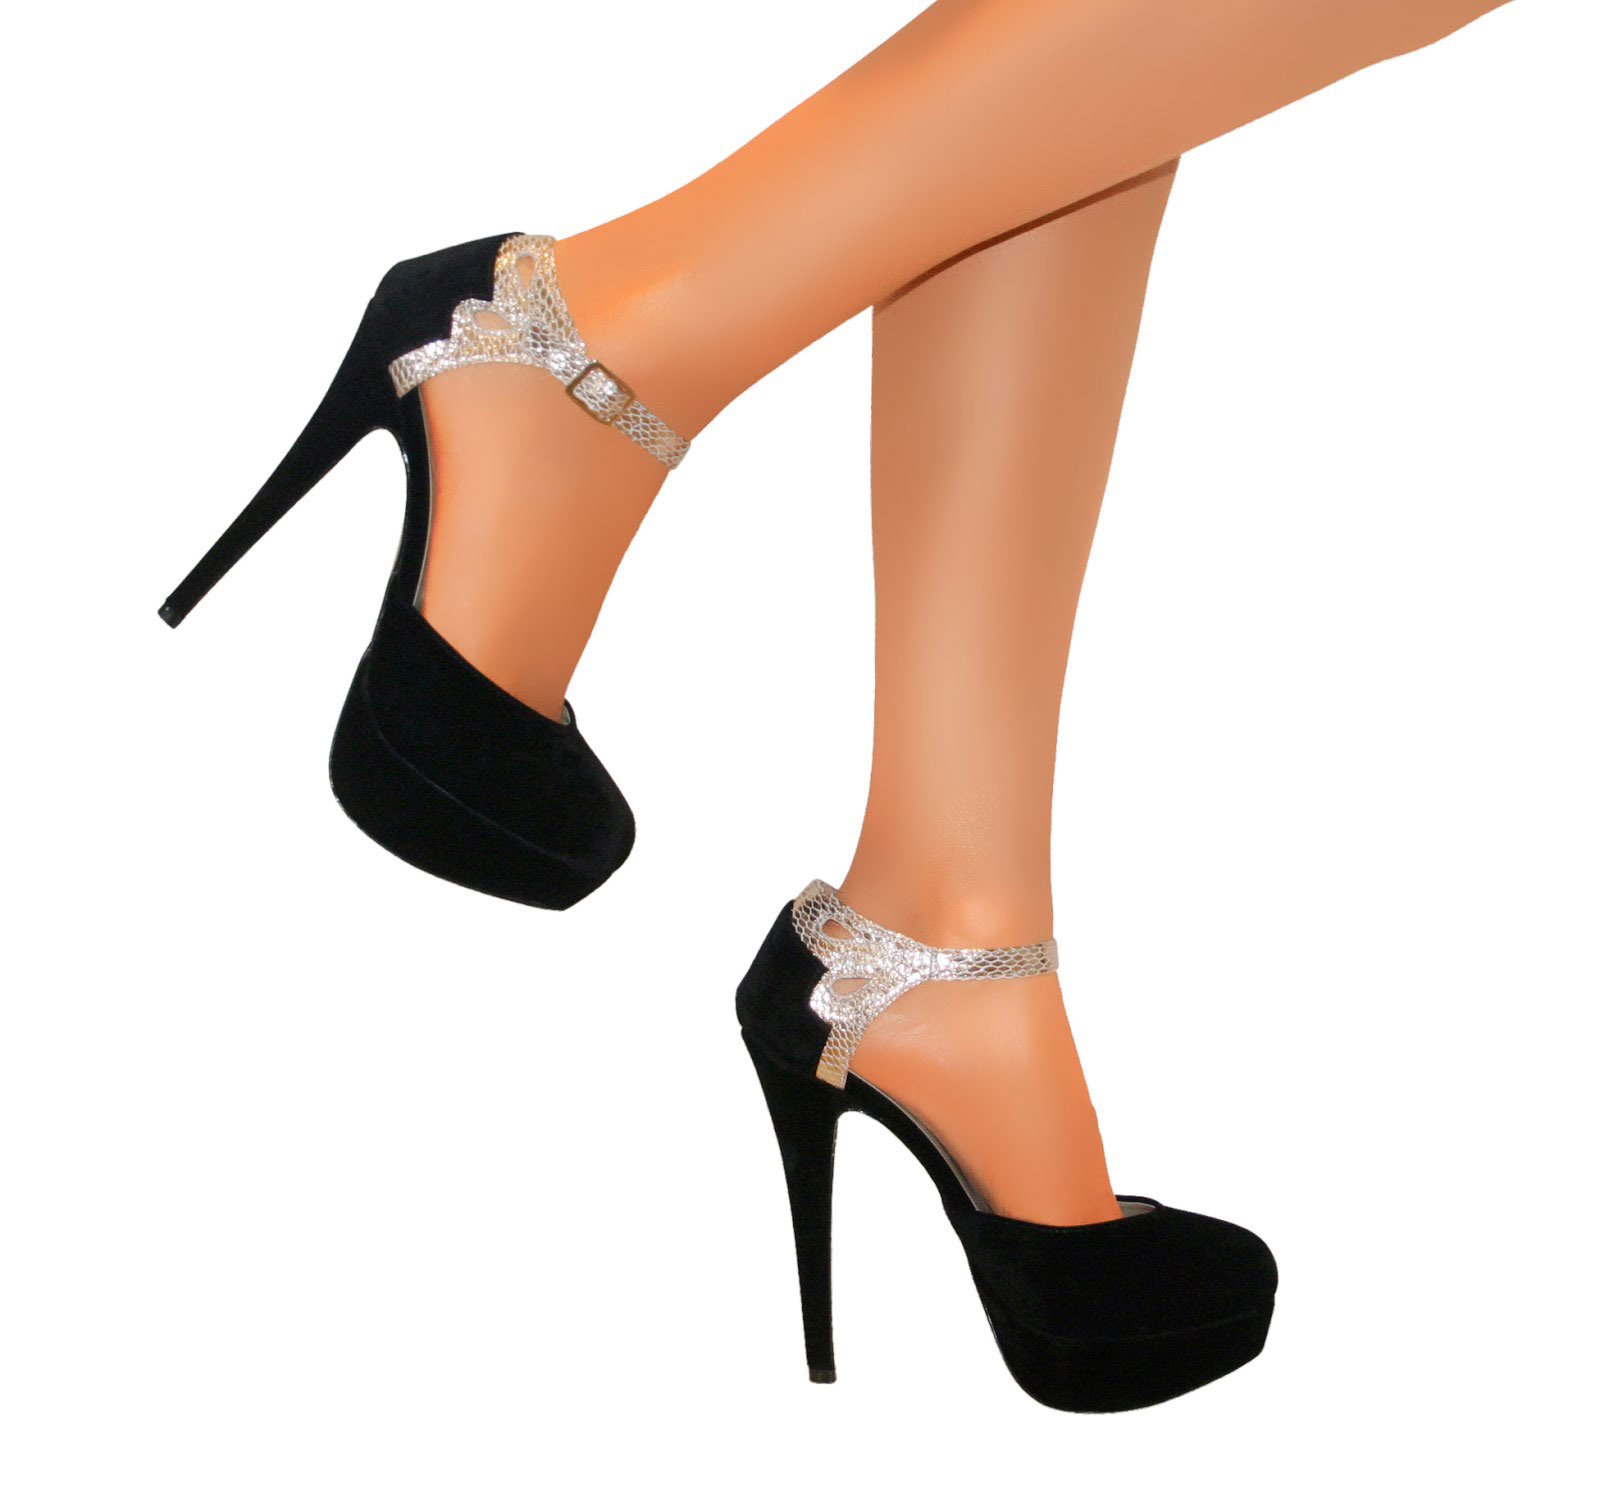 WOMENS STRAPPY GLITTER PLATFORM HIGH STILETTO COURT SHOE HEELS ...